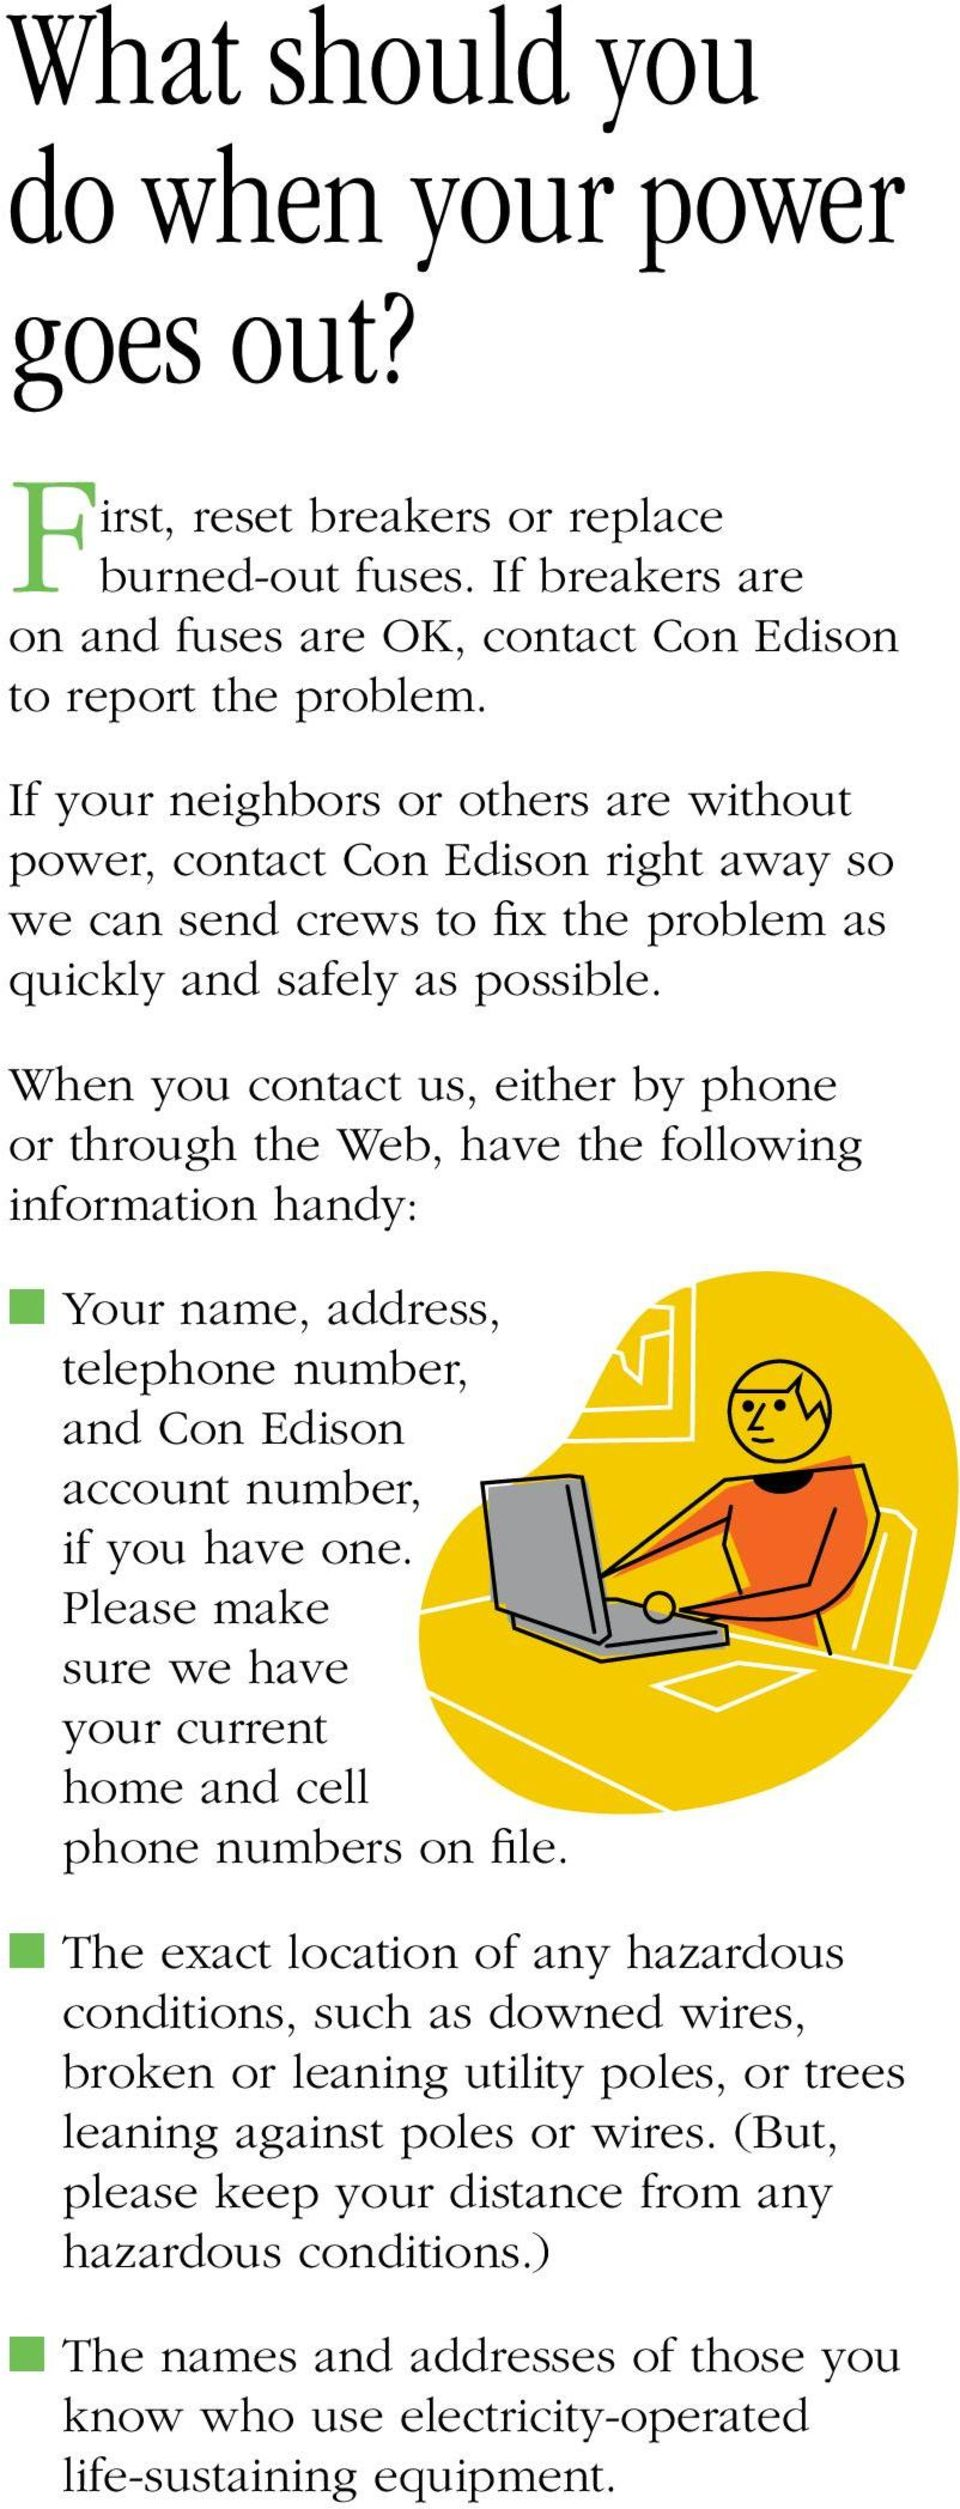 When you contact us, either by phone or through the Web, have the following information handy: n Your name, address, telephone number, and Con Edison account number, if you have one.